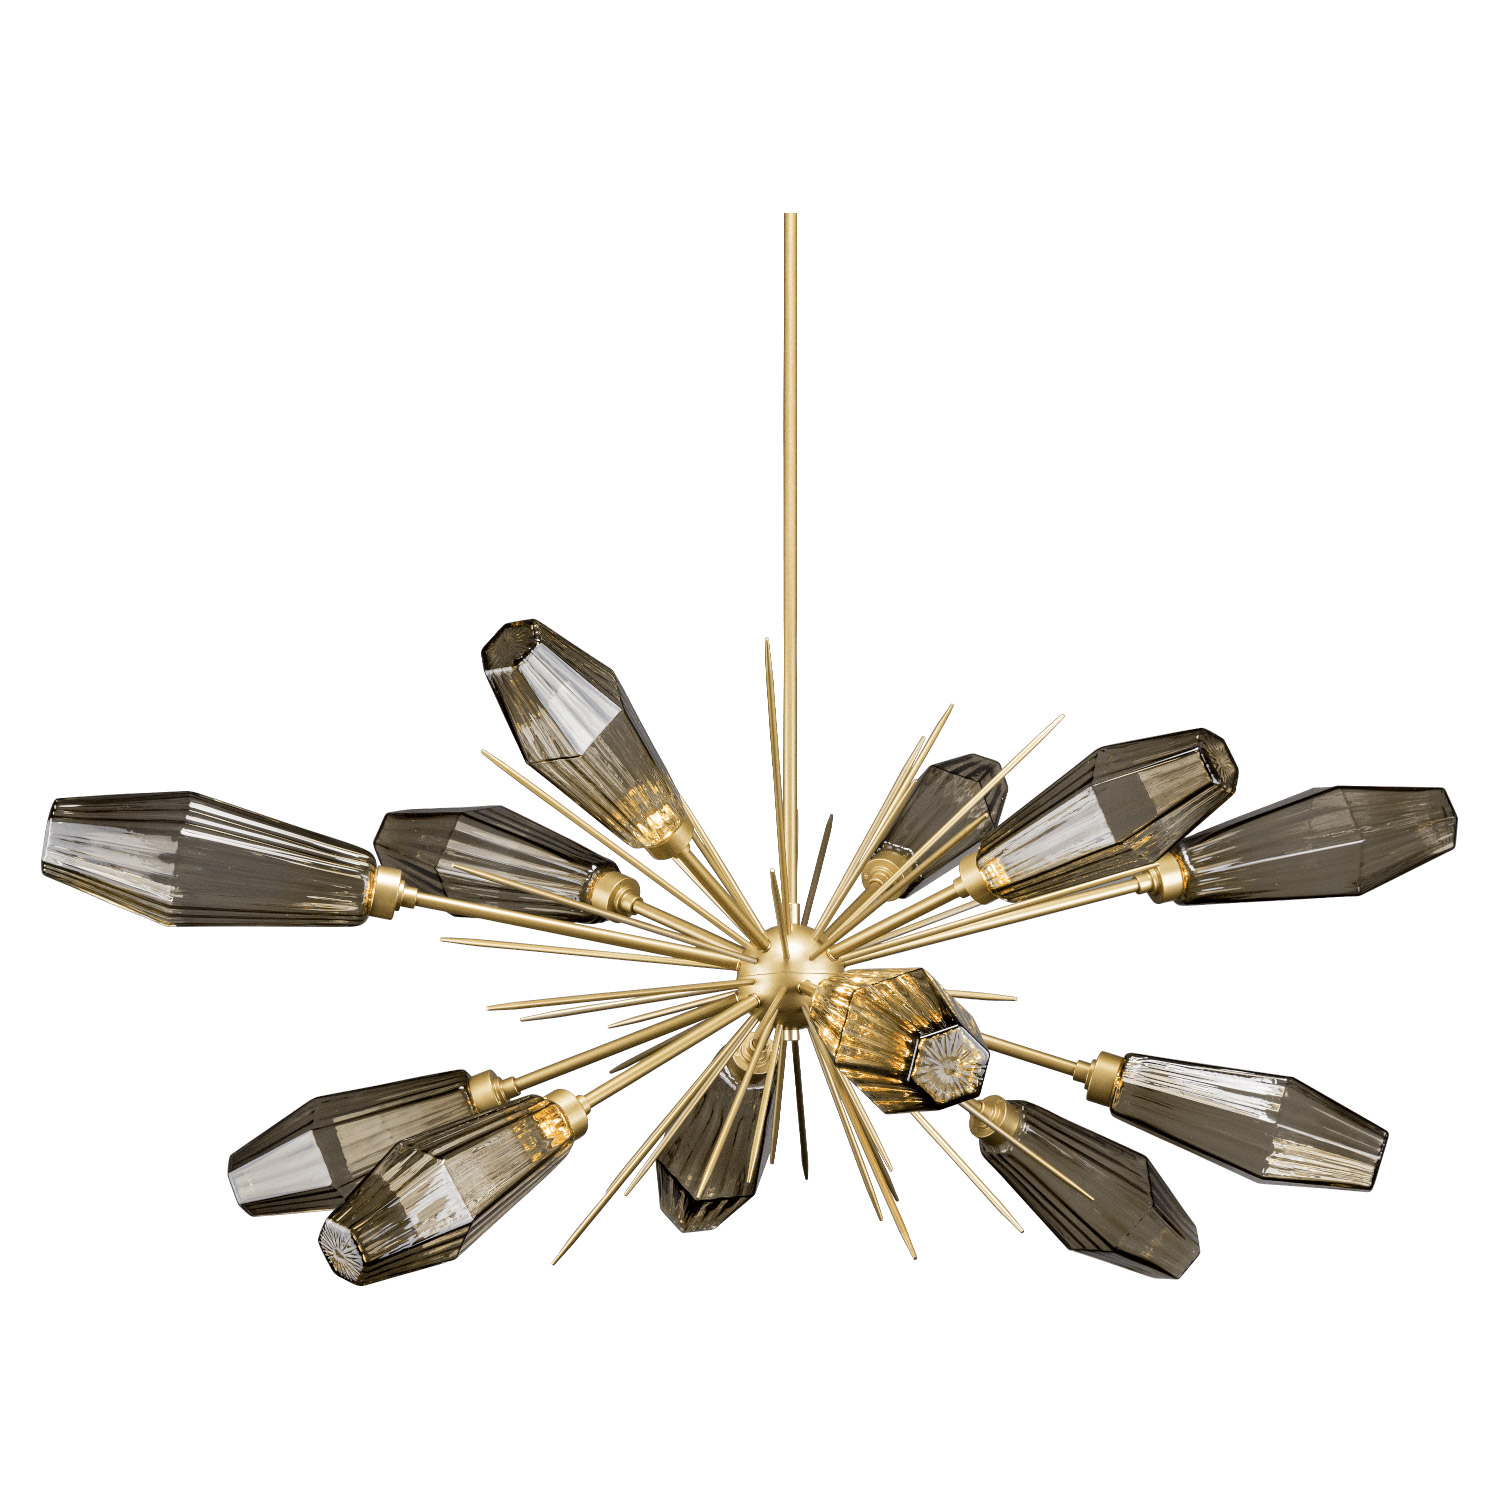 Aalto Oval Starburst Chandelier By Hammerton Studio Plb0049 0a Gb Rb 001 L1